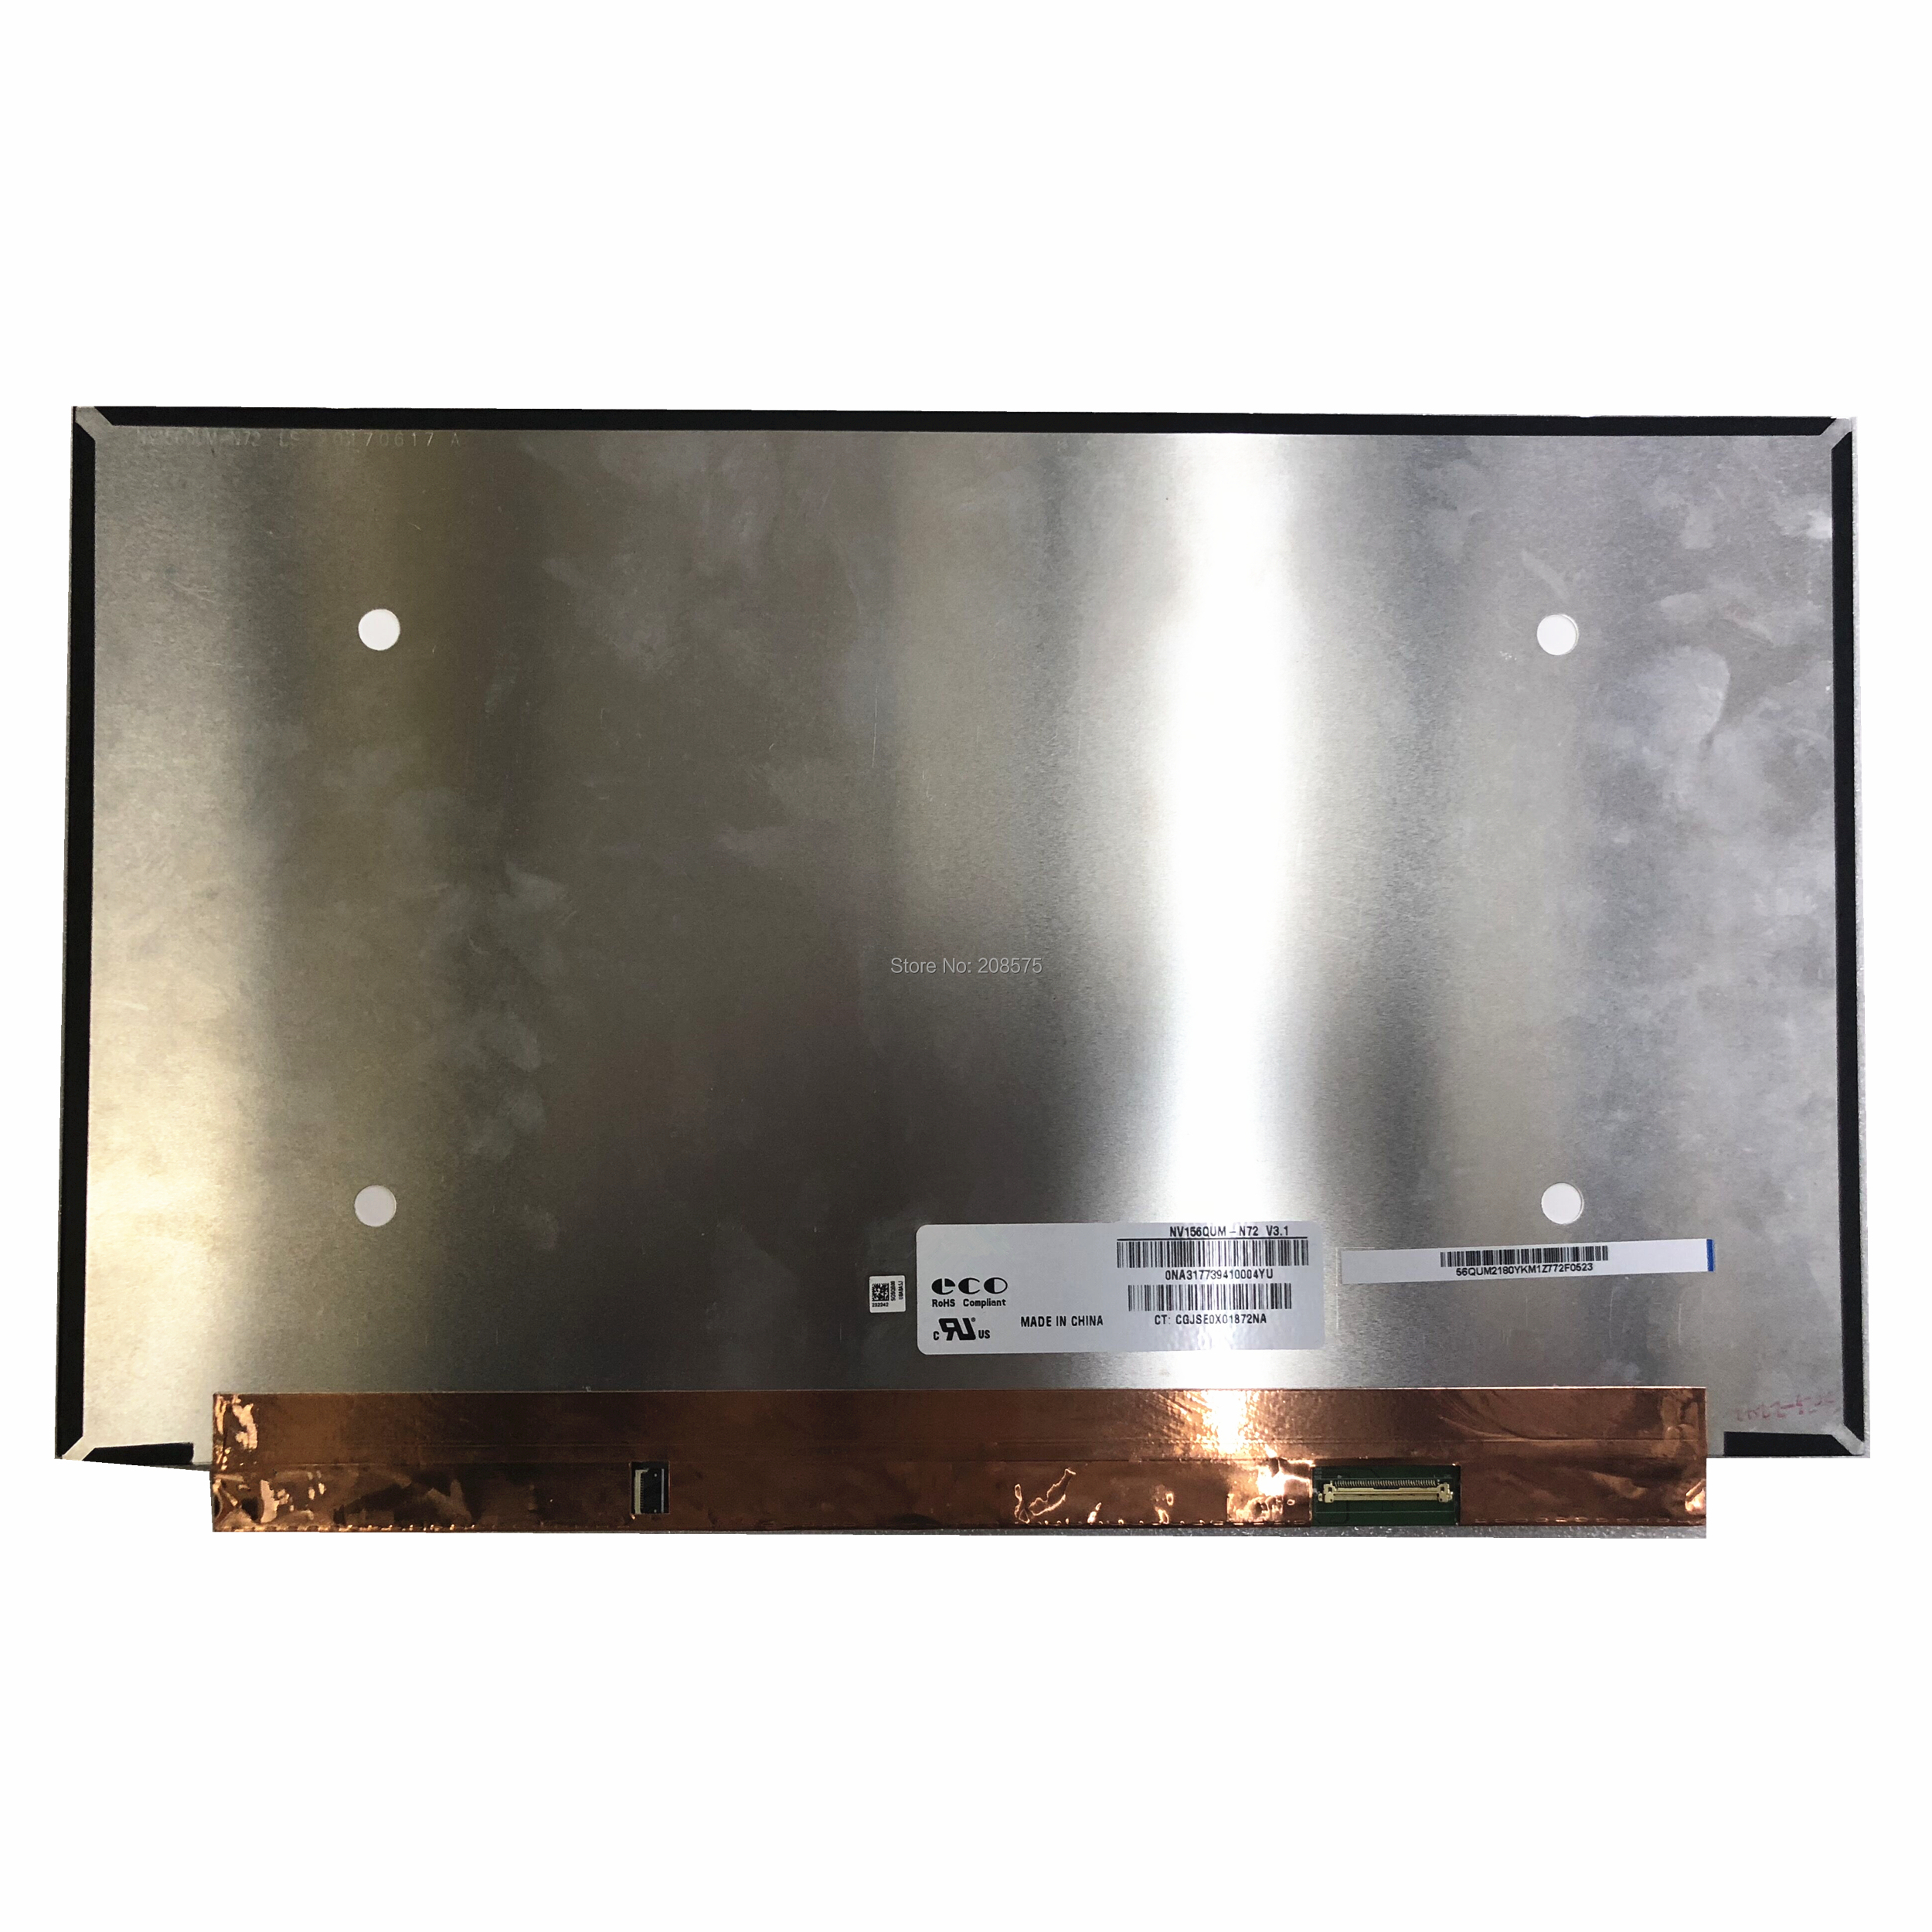 Freeing shipping NV156QUM-N72 NV156QUM N72 15.6 UHD 4K Laptop Lcd Screen 3840*2160 EDP 40Pins Display Non-touch ReplacementFreeing shipping NV156QUM-N72 NV156QUM N72 15.6 UHD 4K Laptop Lcd Screen 3840*2160 EDP 40Pins Display Non-touch Replacement